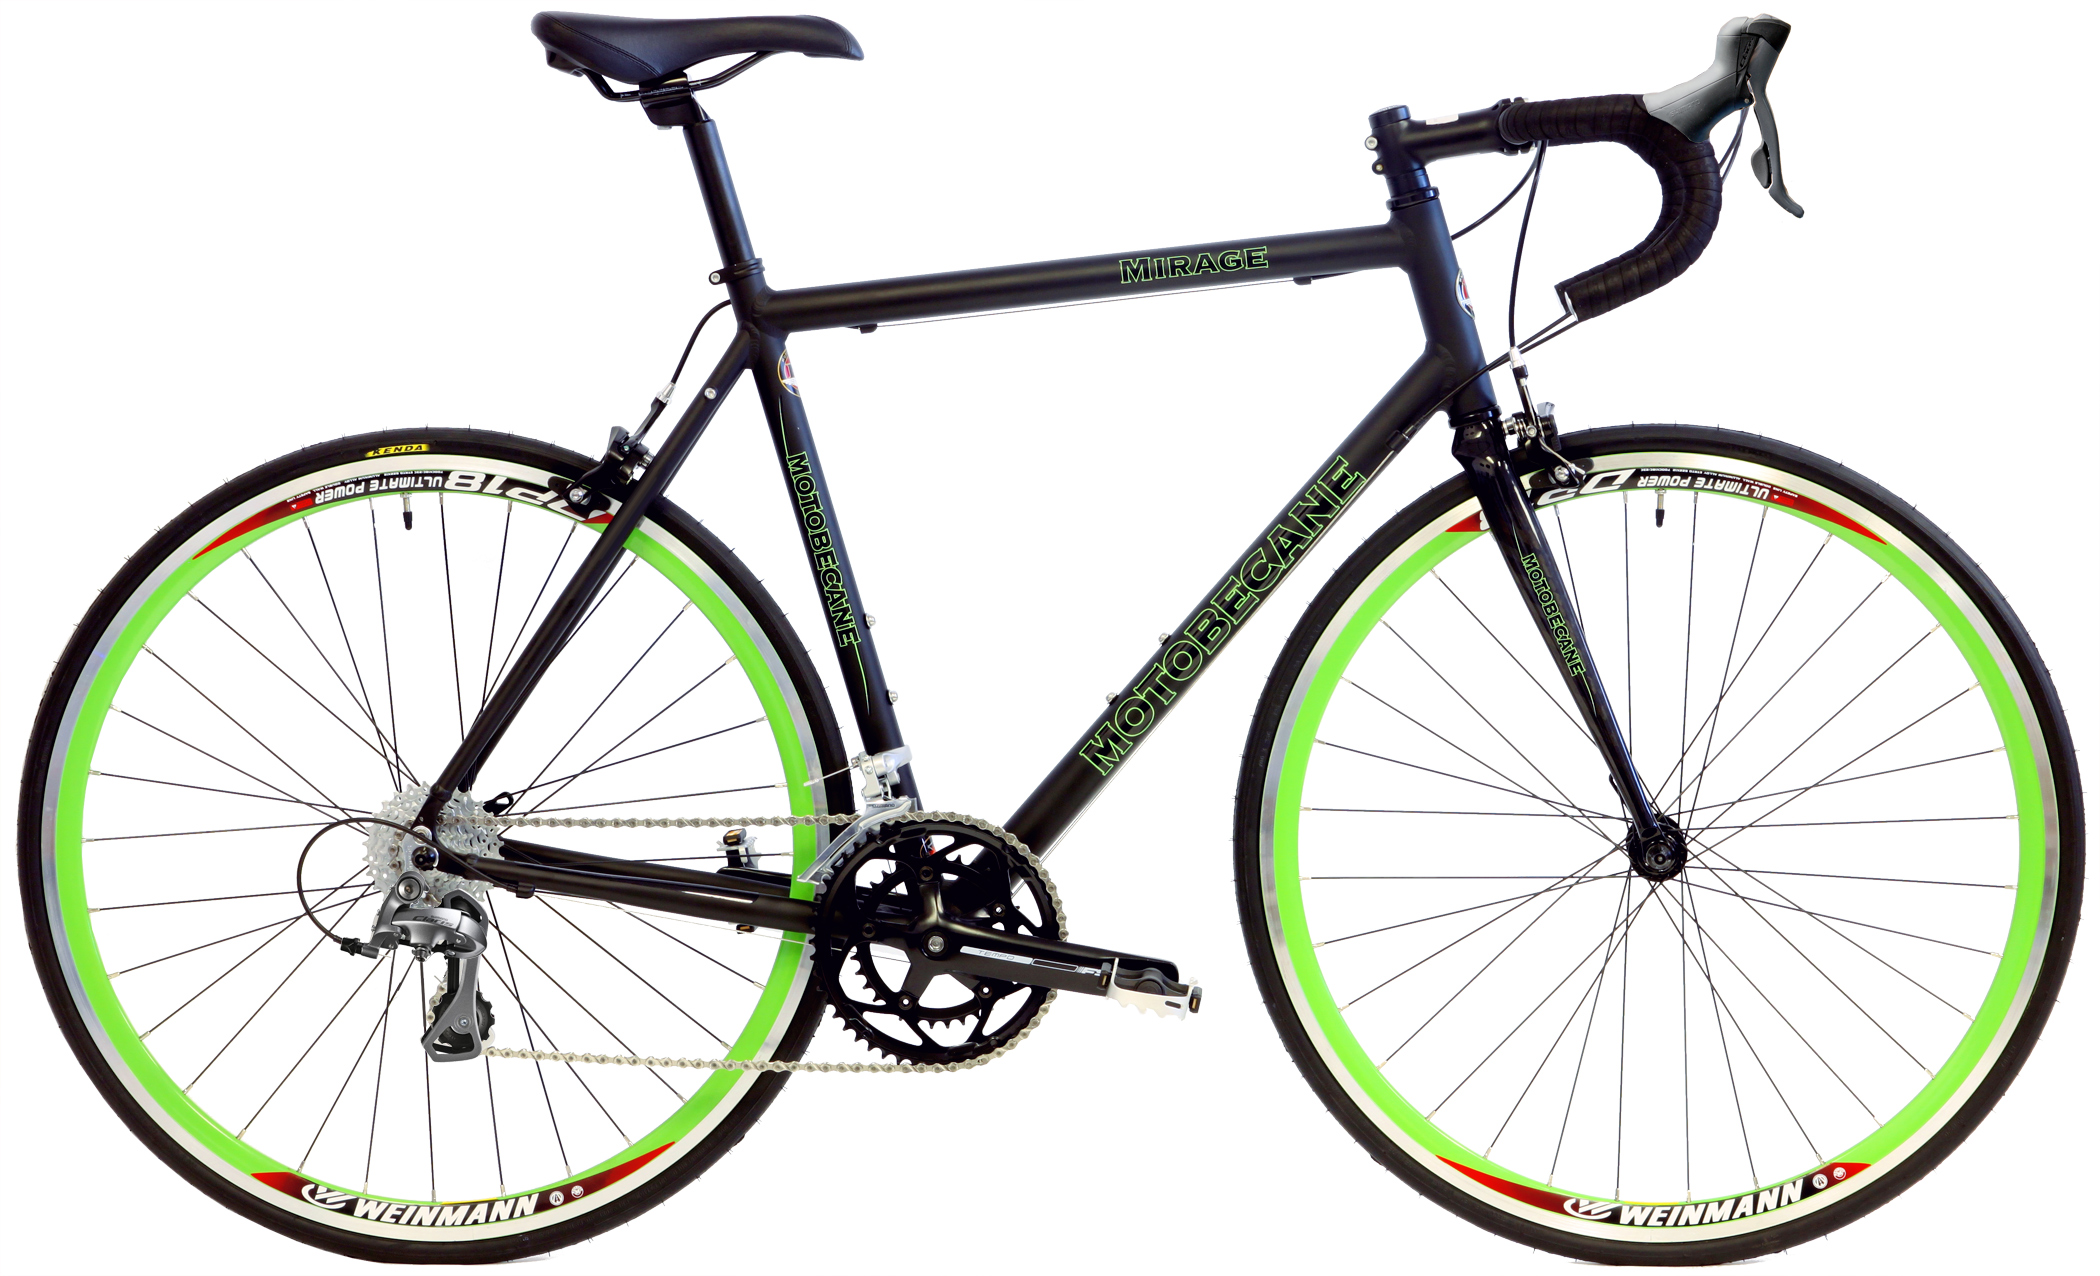 Bikesdirect Motobecane Reviews Road Bikes Motobecane